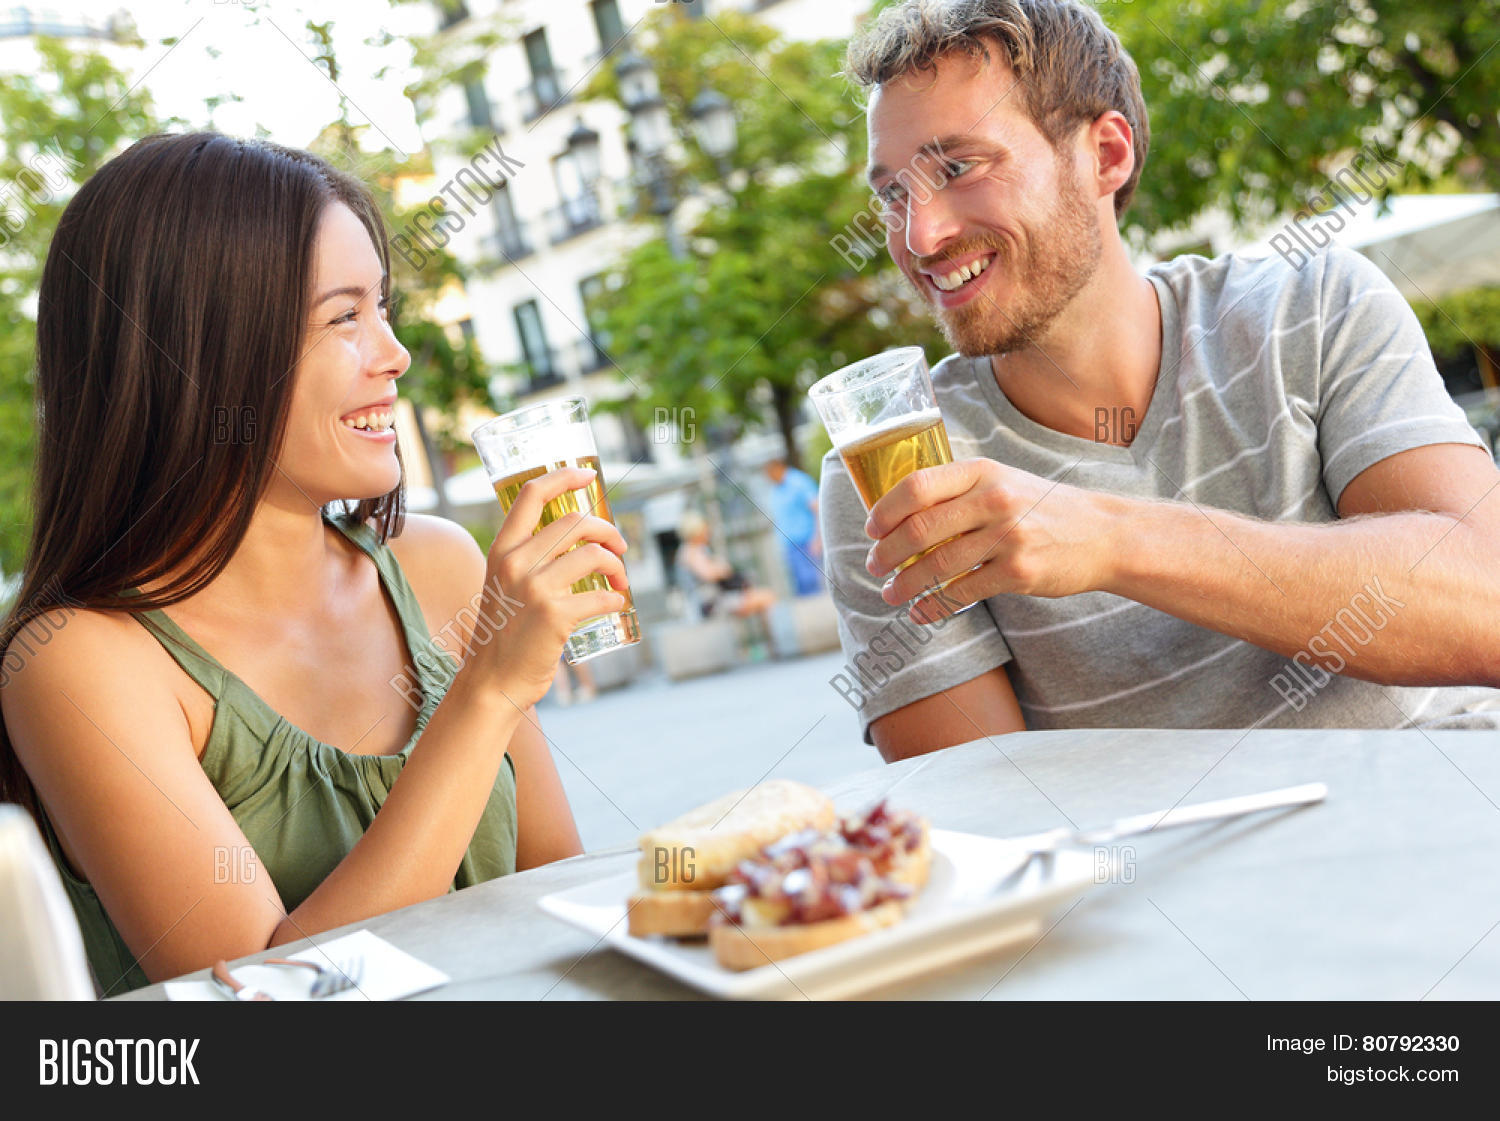 dating in madrid